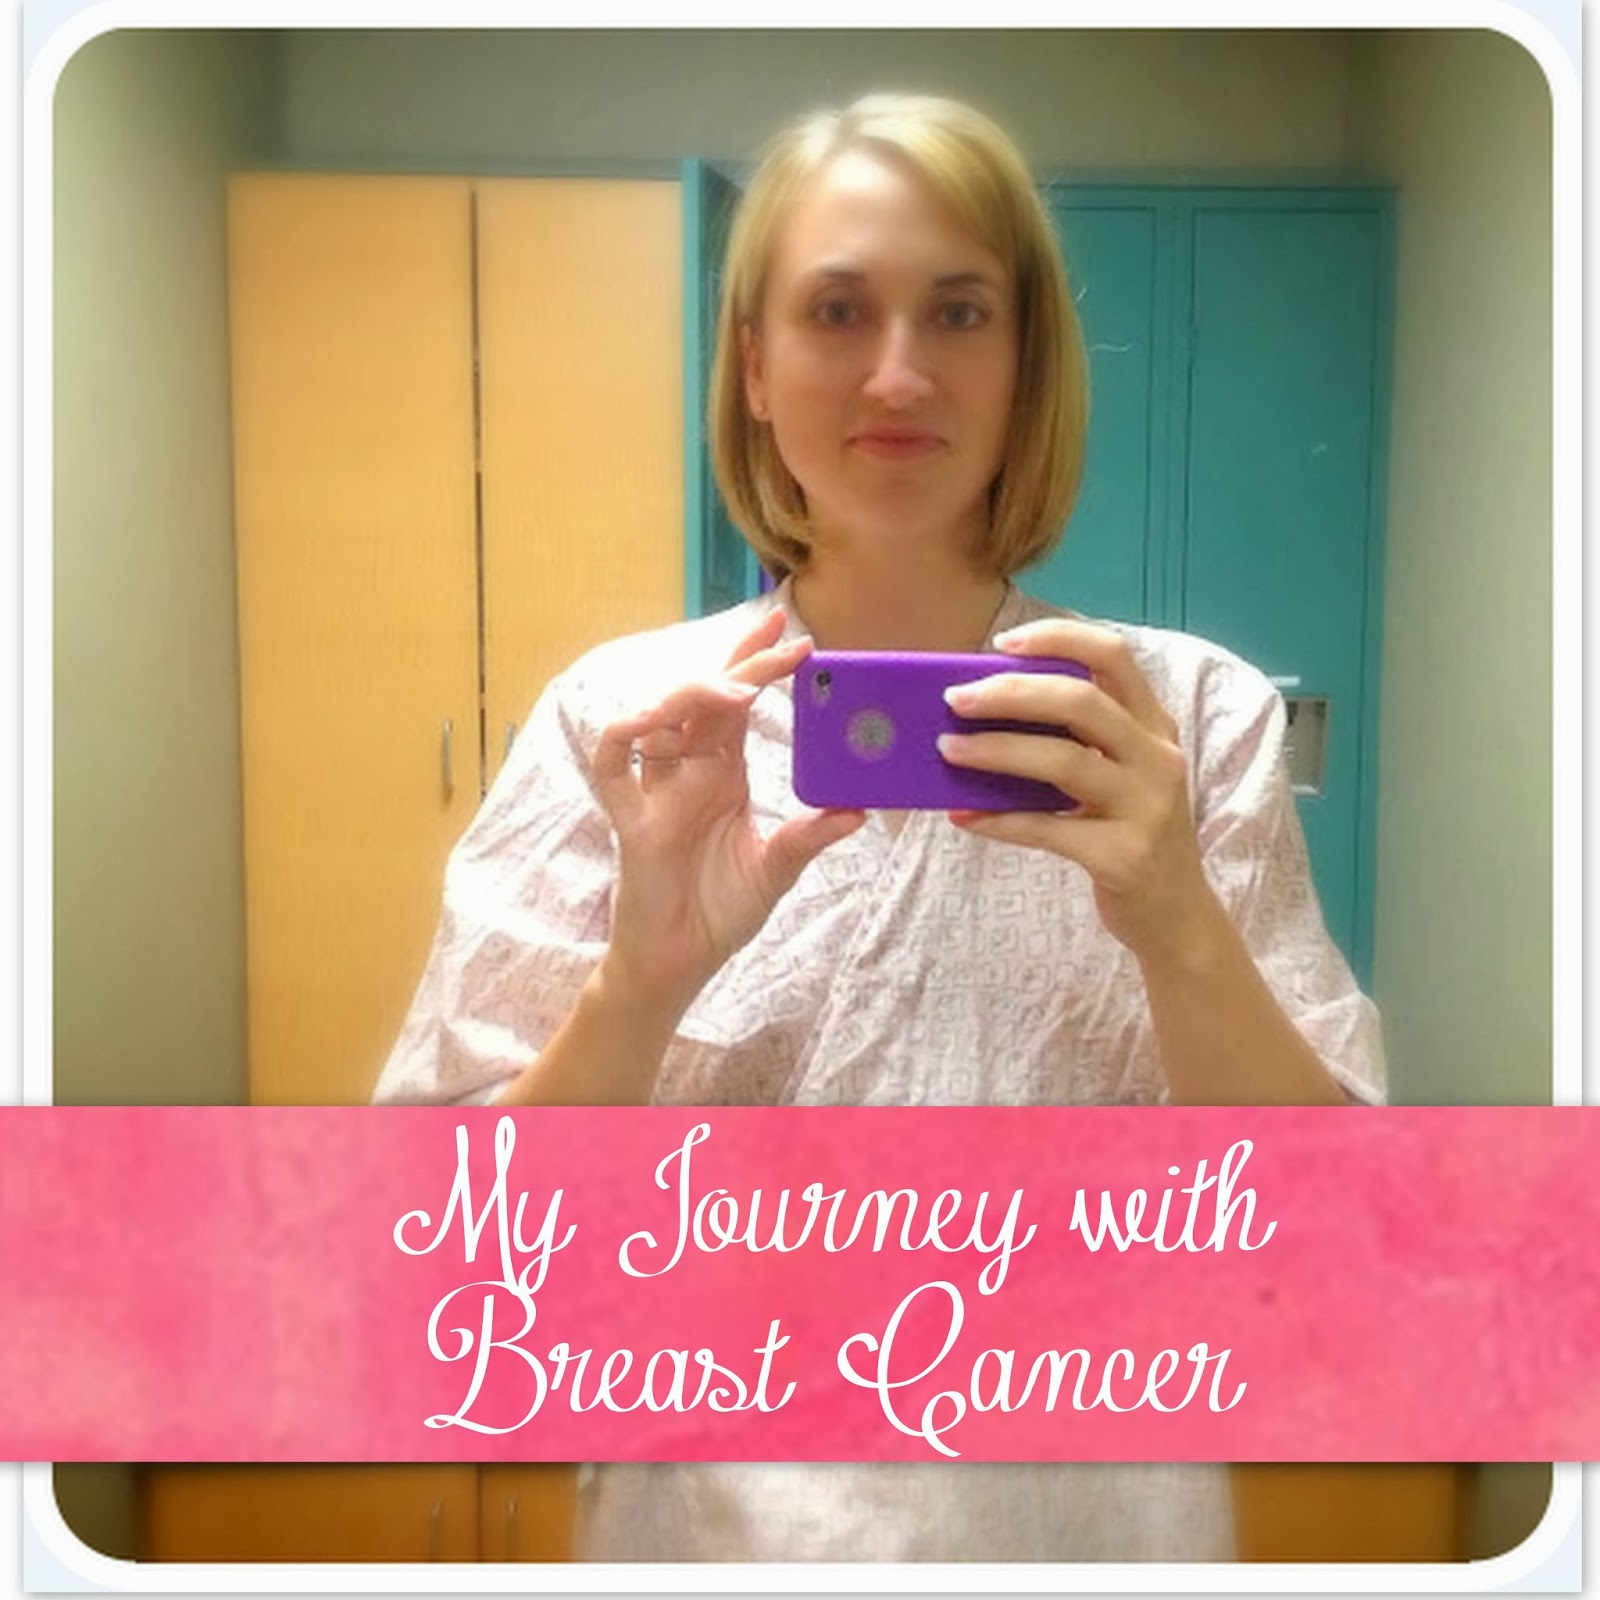 1000 Images About Cancer Journey On Pinterest: My Journey With Breast Cancer